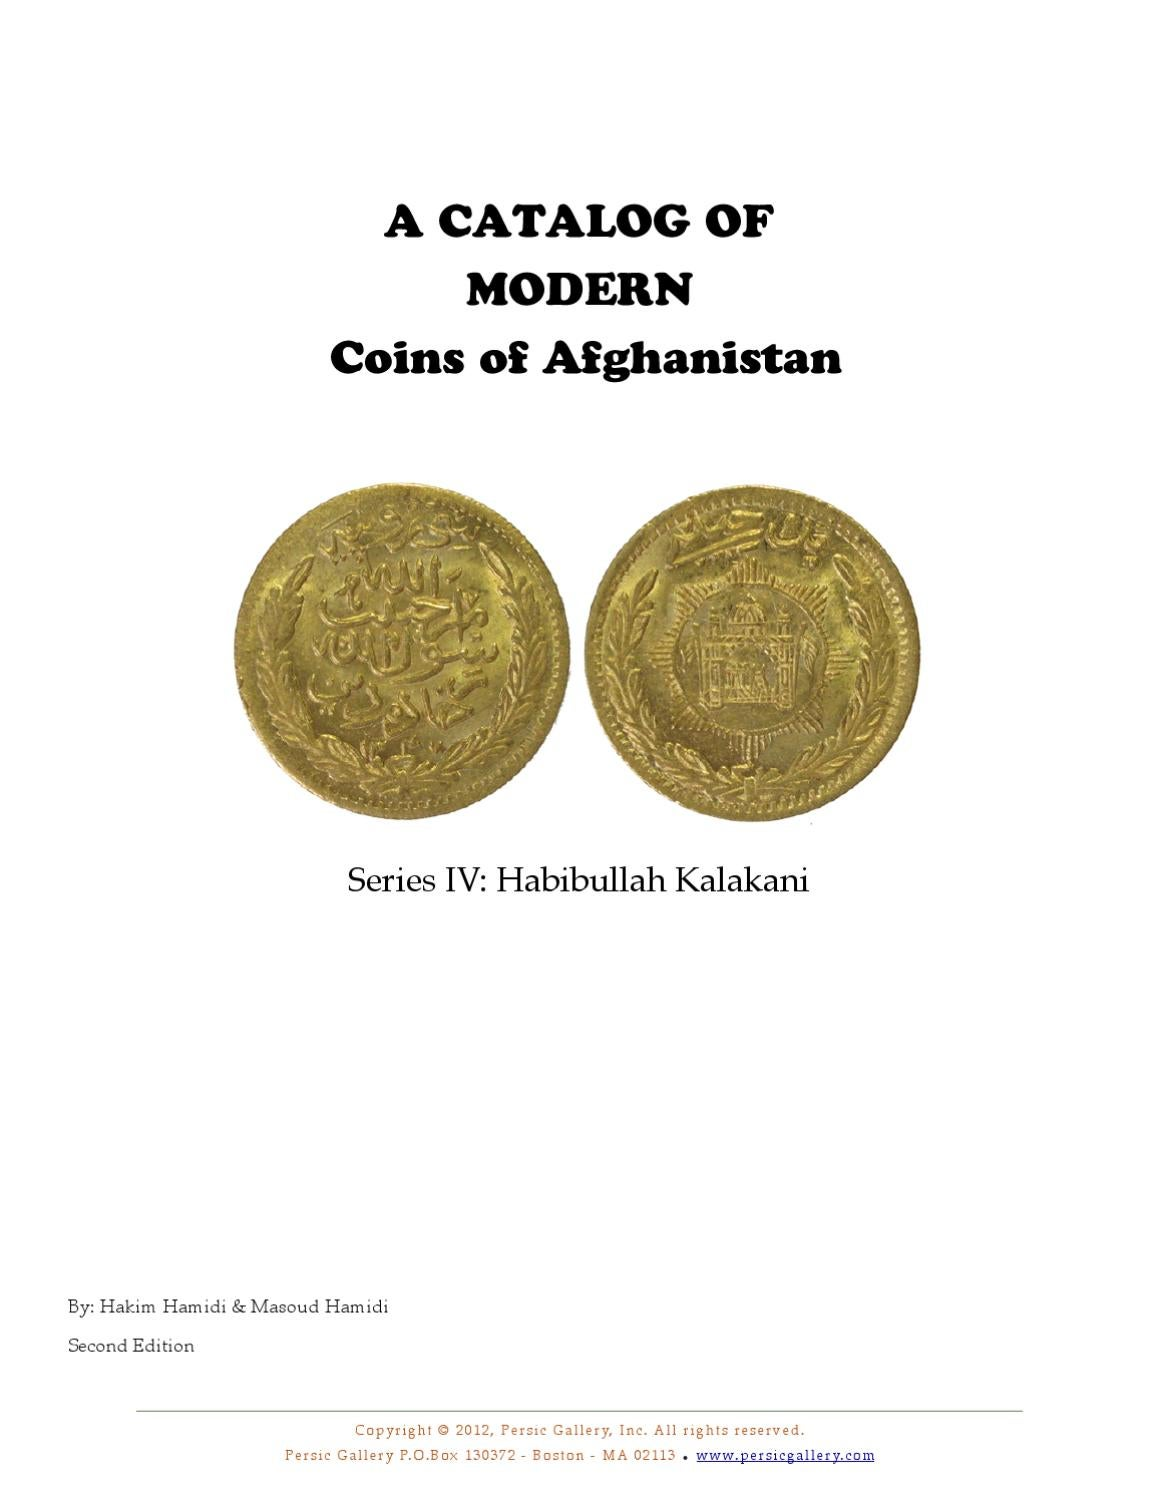 A catalog of Modern Coins of Afghanistan by Persic Gallery ...